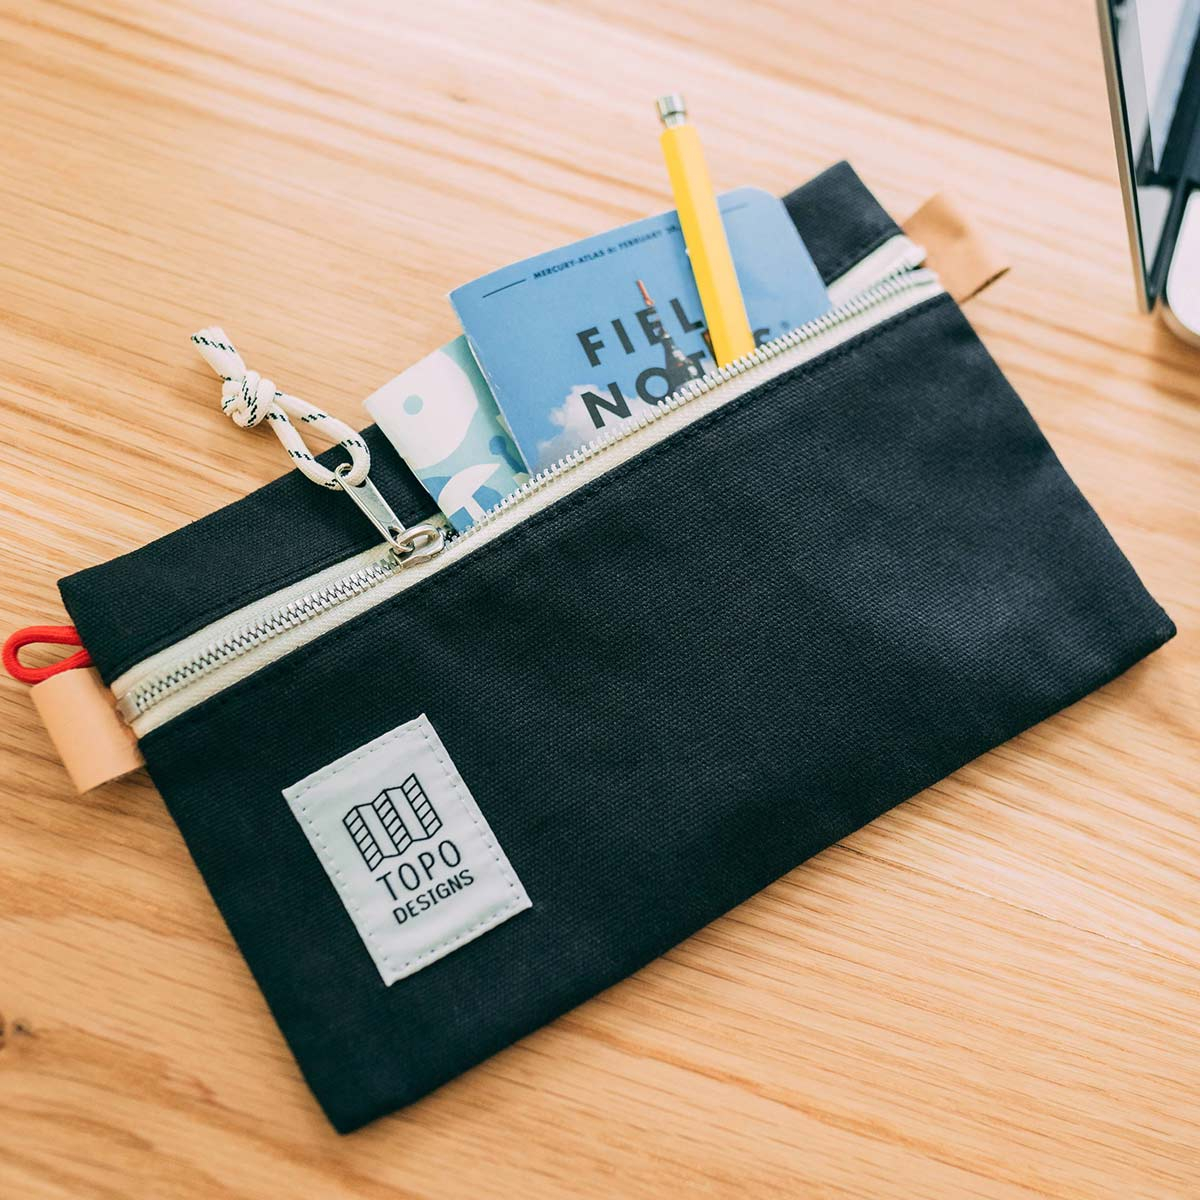 Topo Designs Accessory Bags Canvas Black 3 Sizes, built for durability and organization